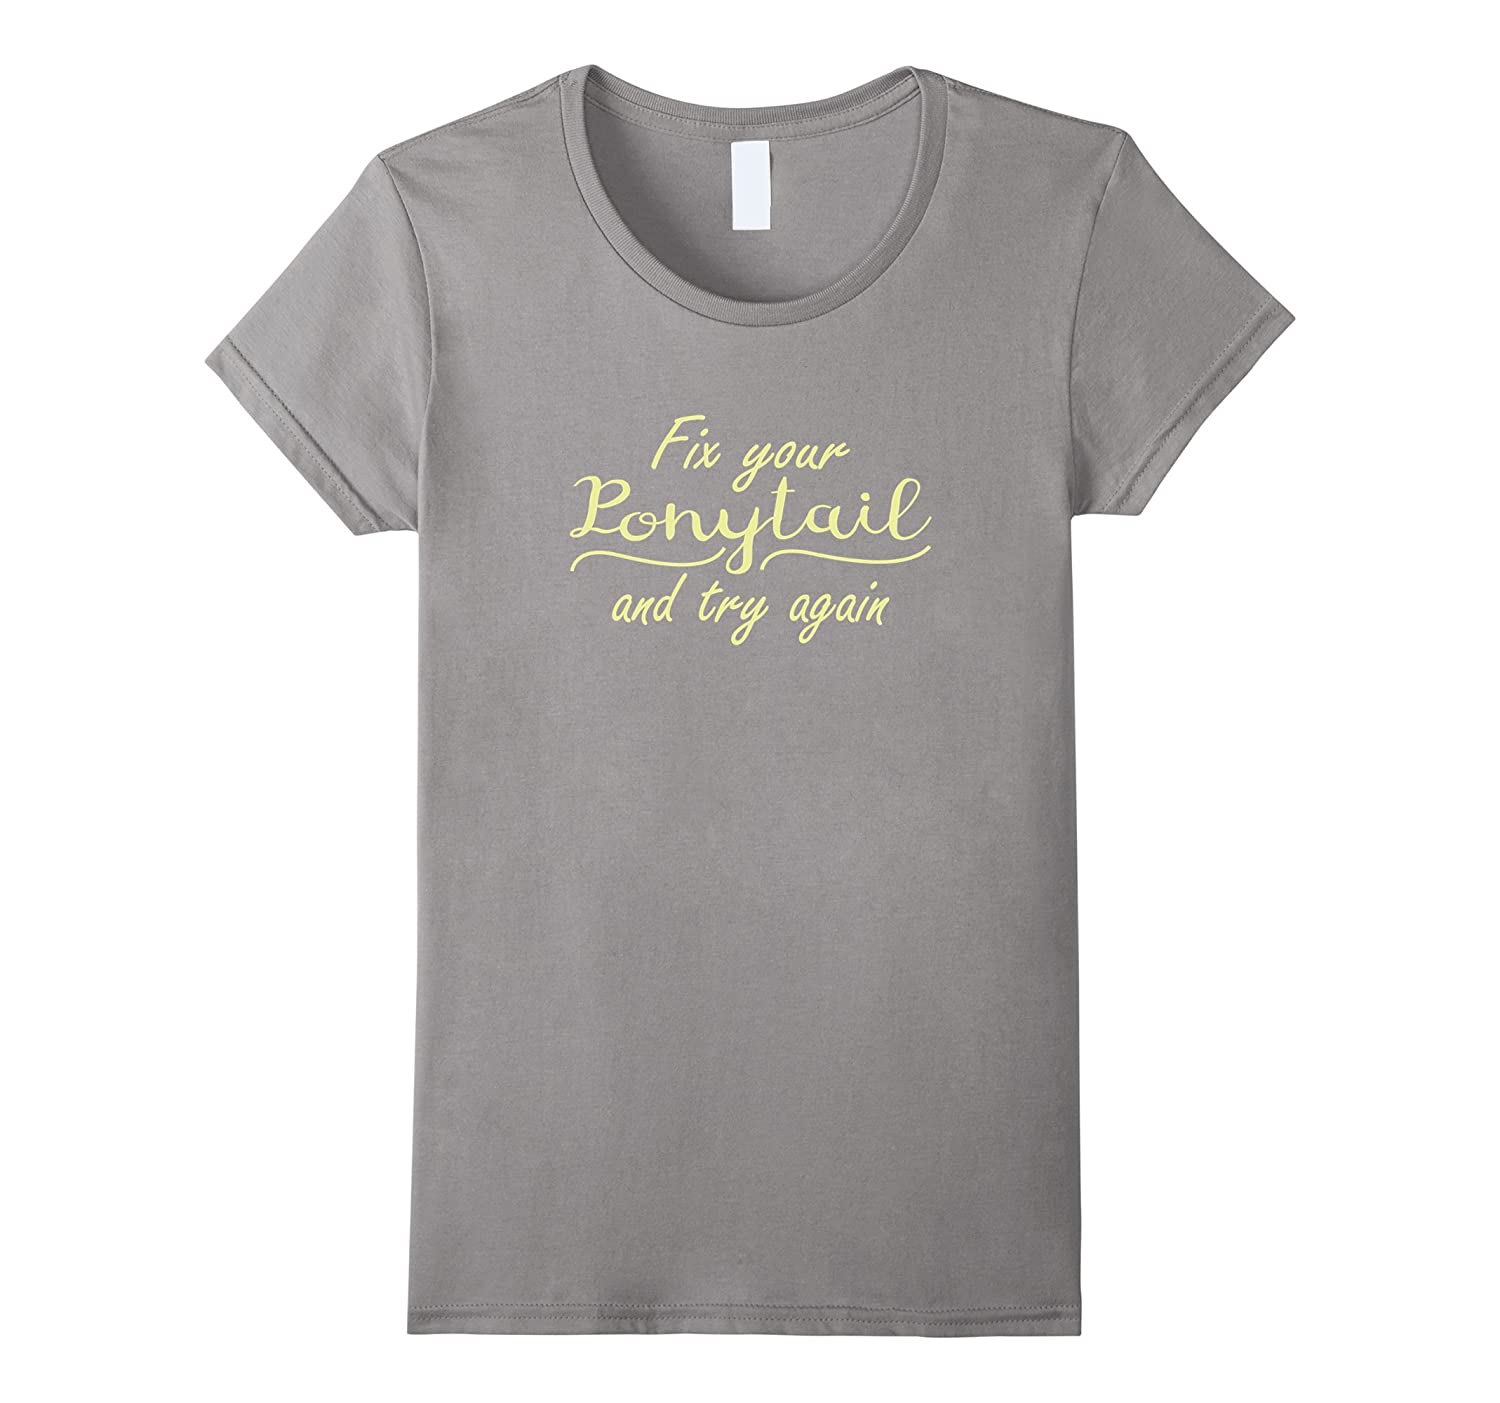 Fix Your Ponytail and Try Again Motivational T-Shirt-Bawle